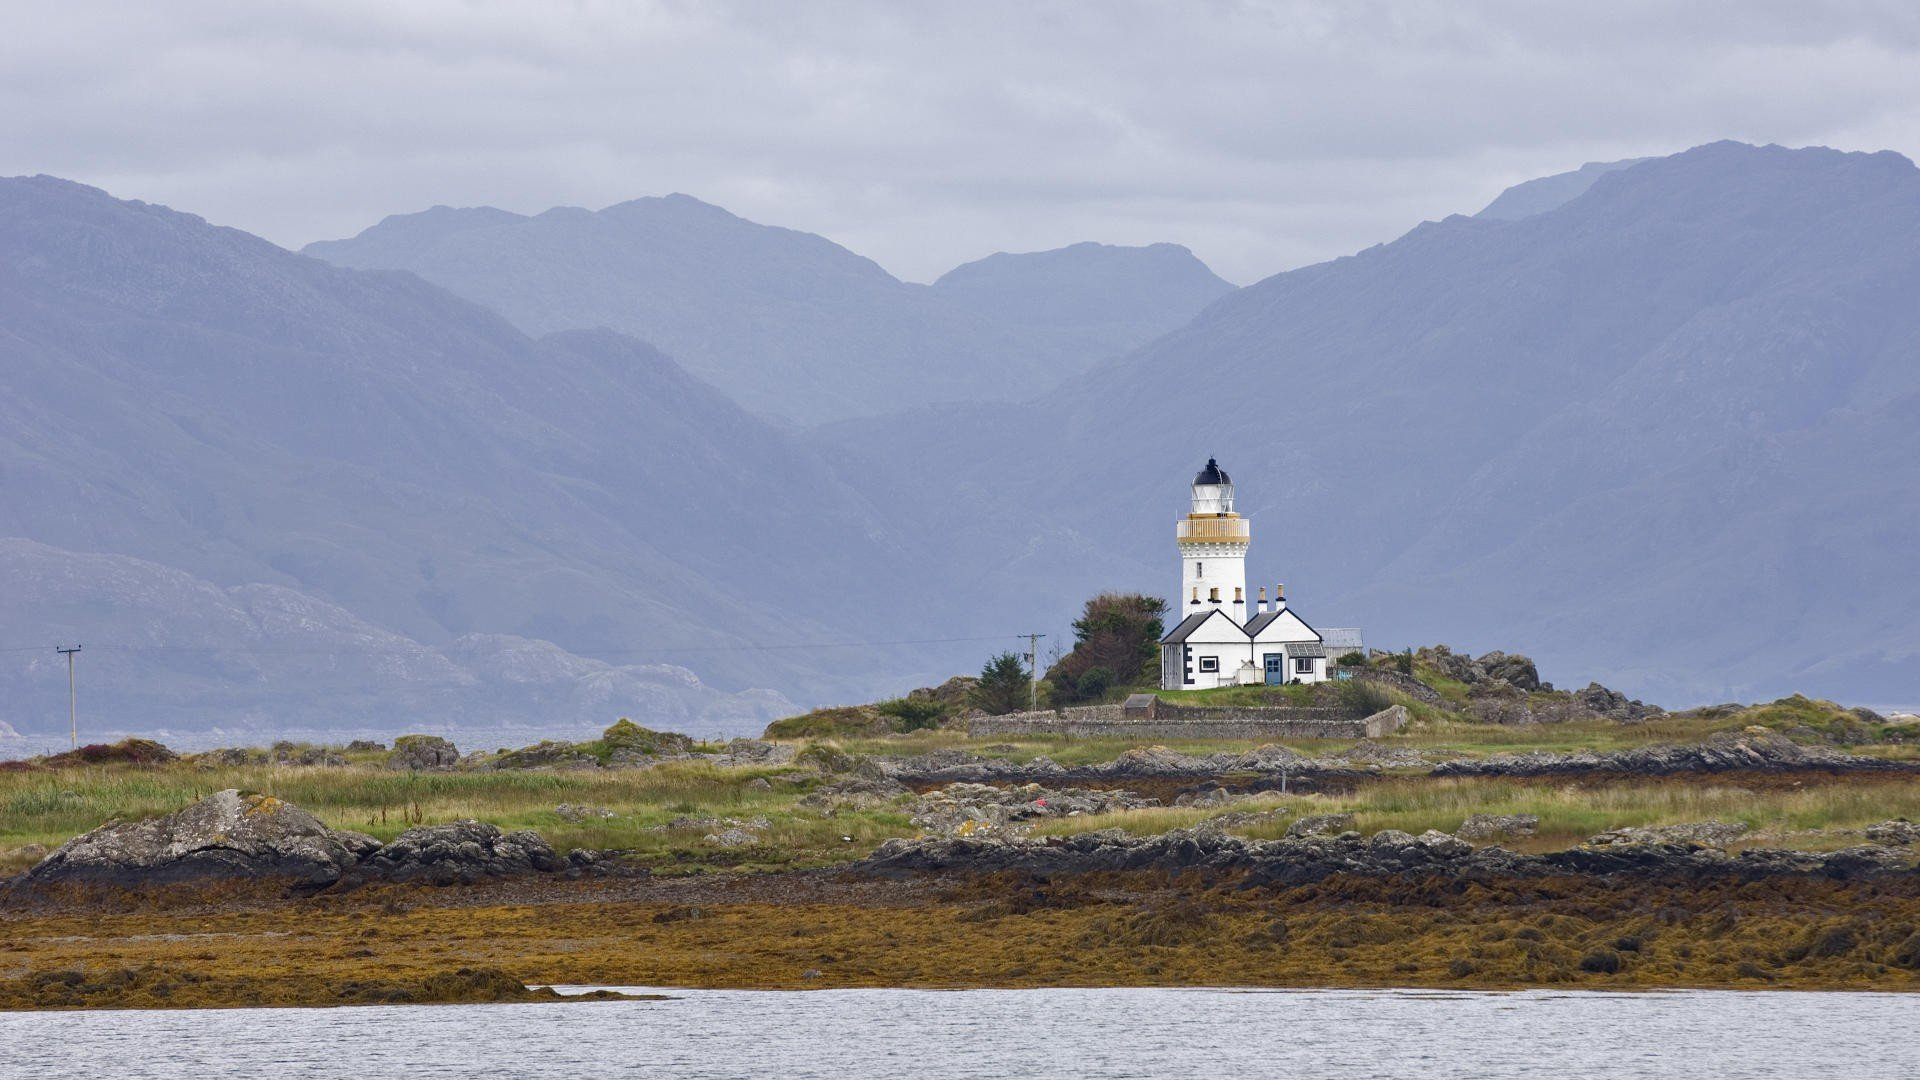 Lighthouses Scotland Isle Of Skye Wallpaper 1920x1080 296037 Wallpaperup